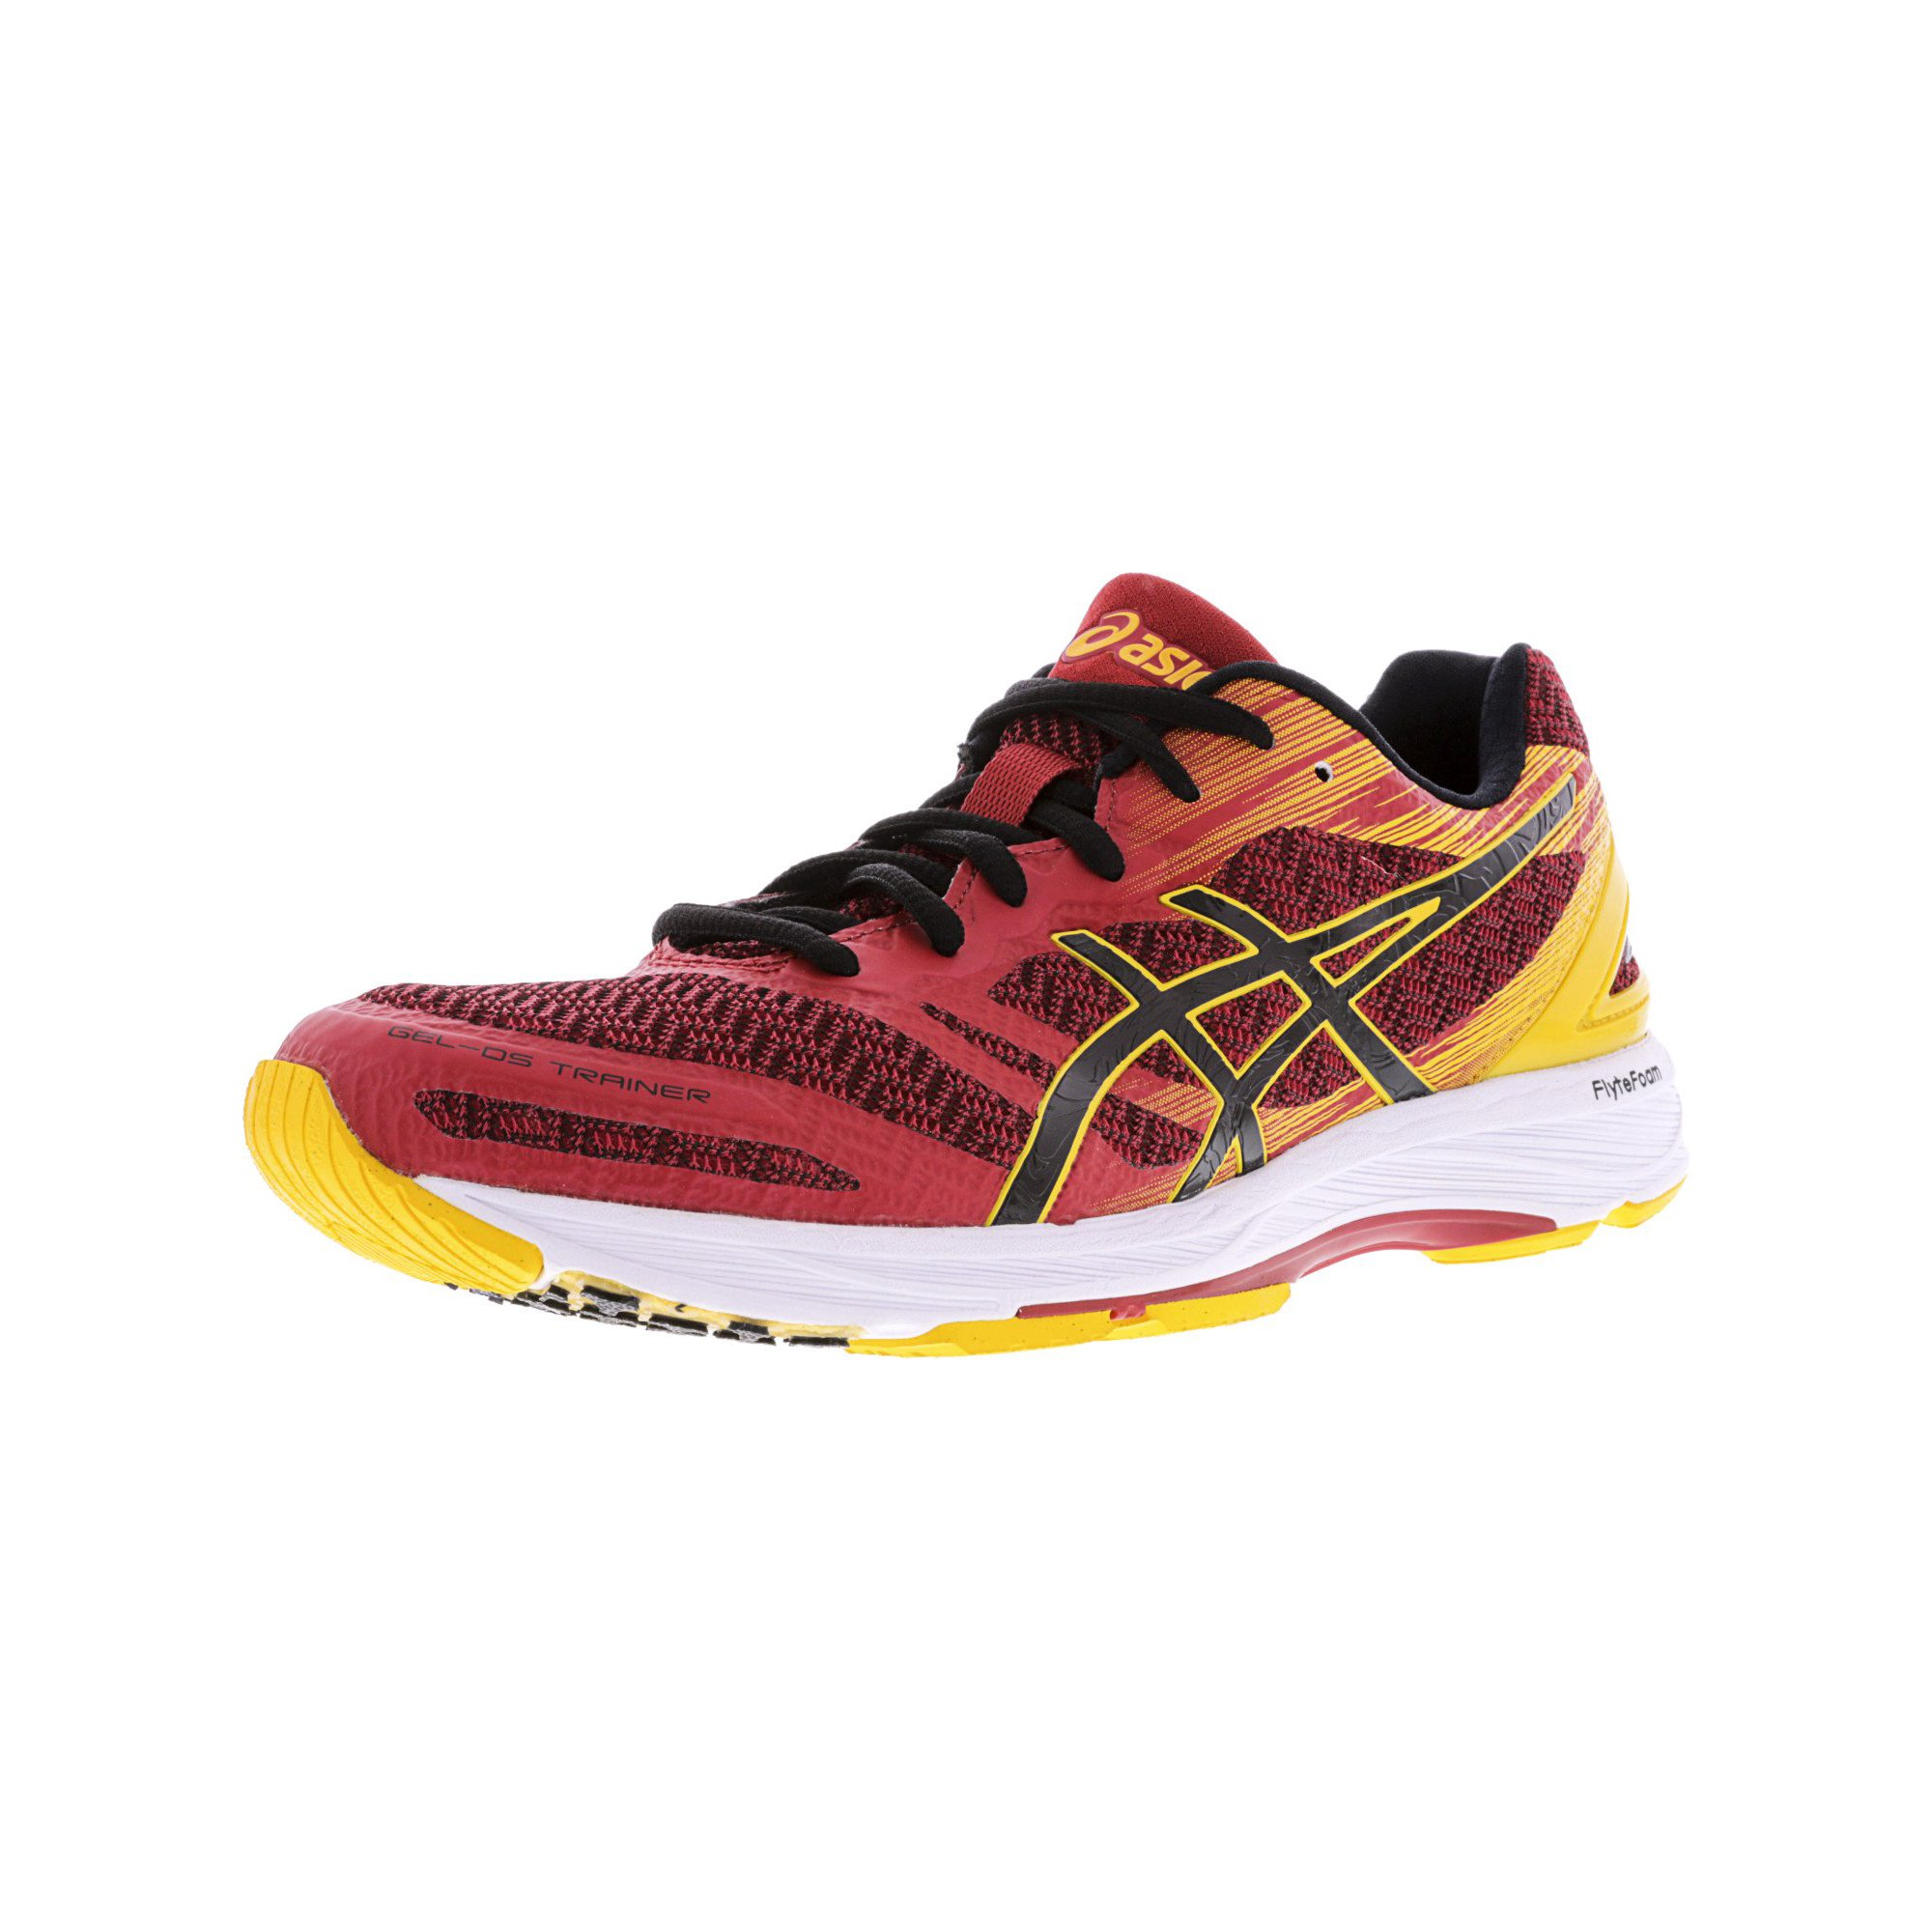 new concept c85ad d750e Asics Men's Gel-Ds Trainer 22 Carbon / Black Safety Yellow Ankle-High  Training Shoes - 14M